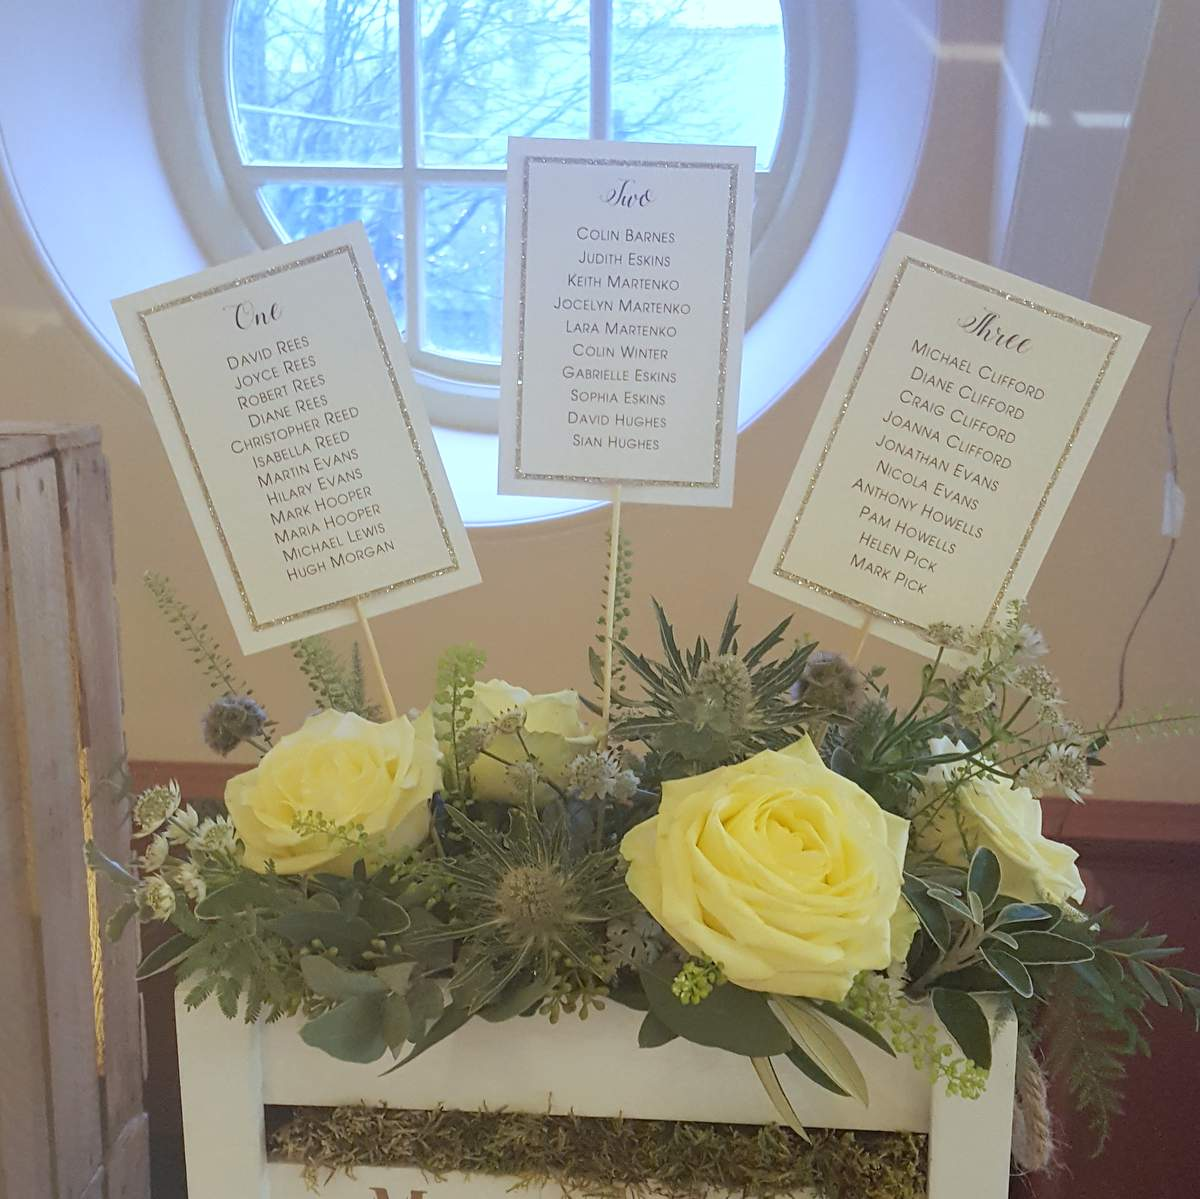 Wedding table plan cards, mounted on stick and sticking out of a rustic crate full of fresh flowers